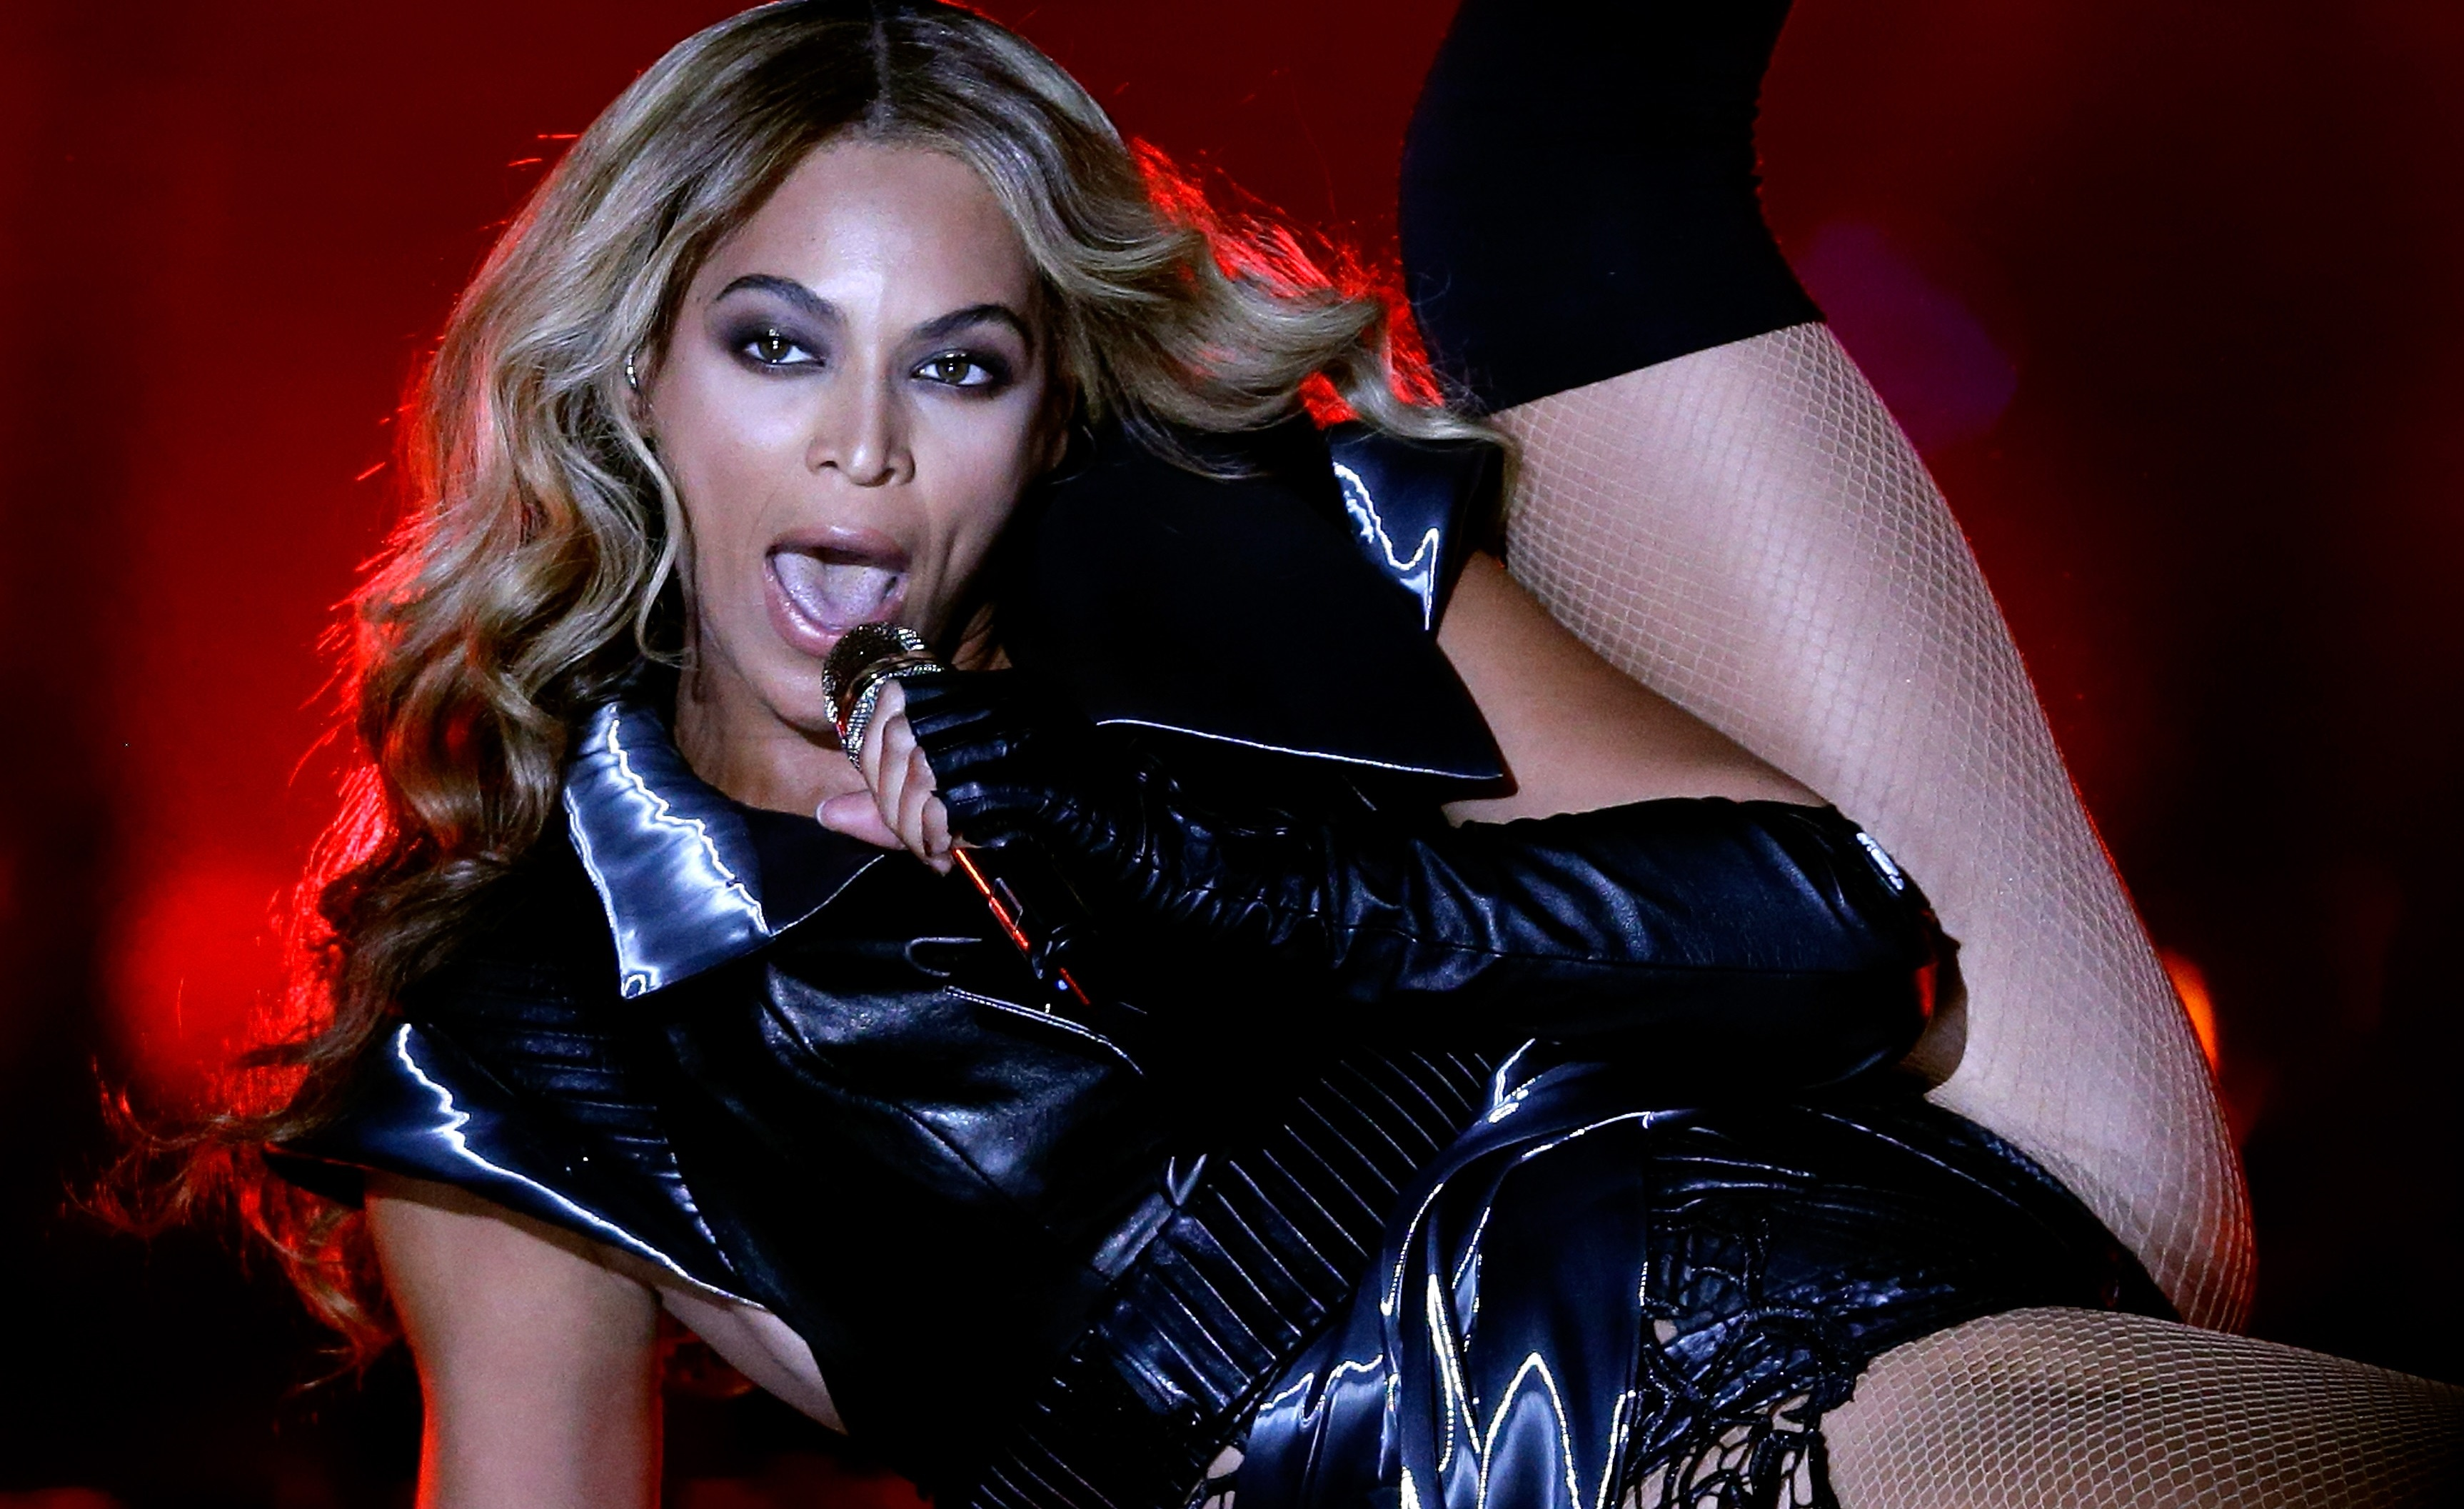 Beyonce pron images makes girl orgasm